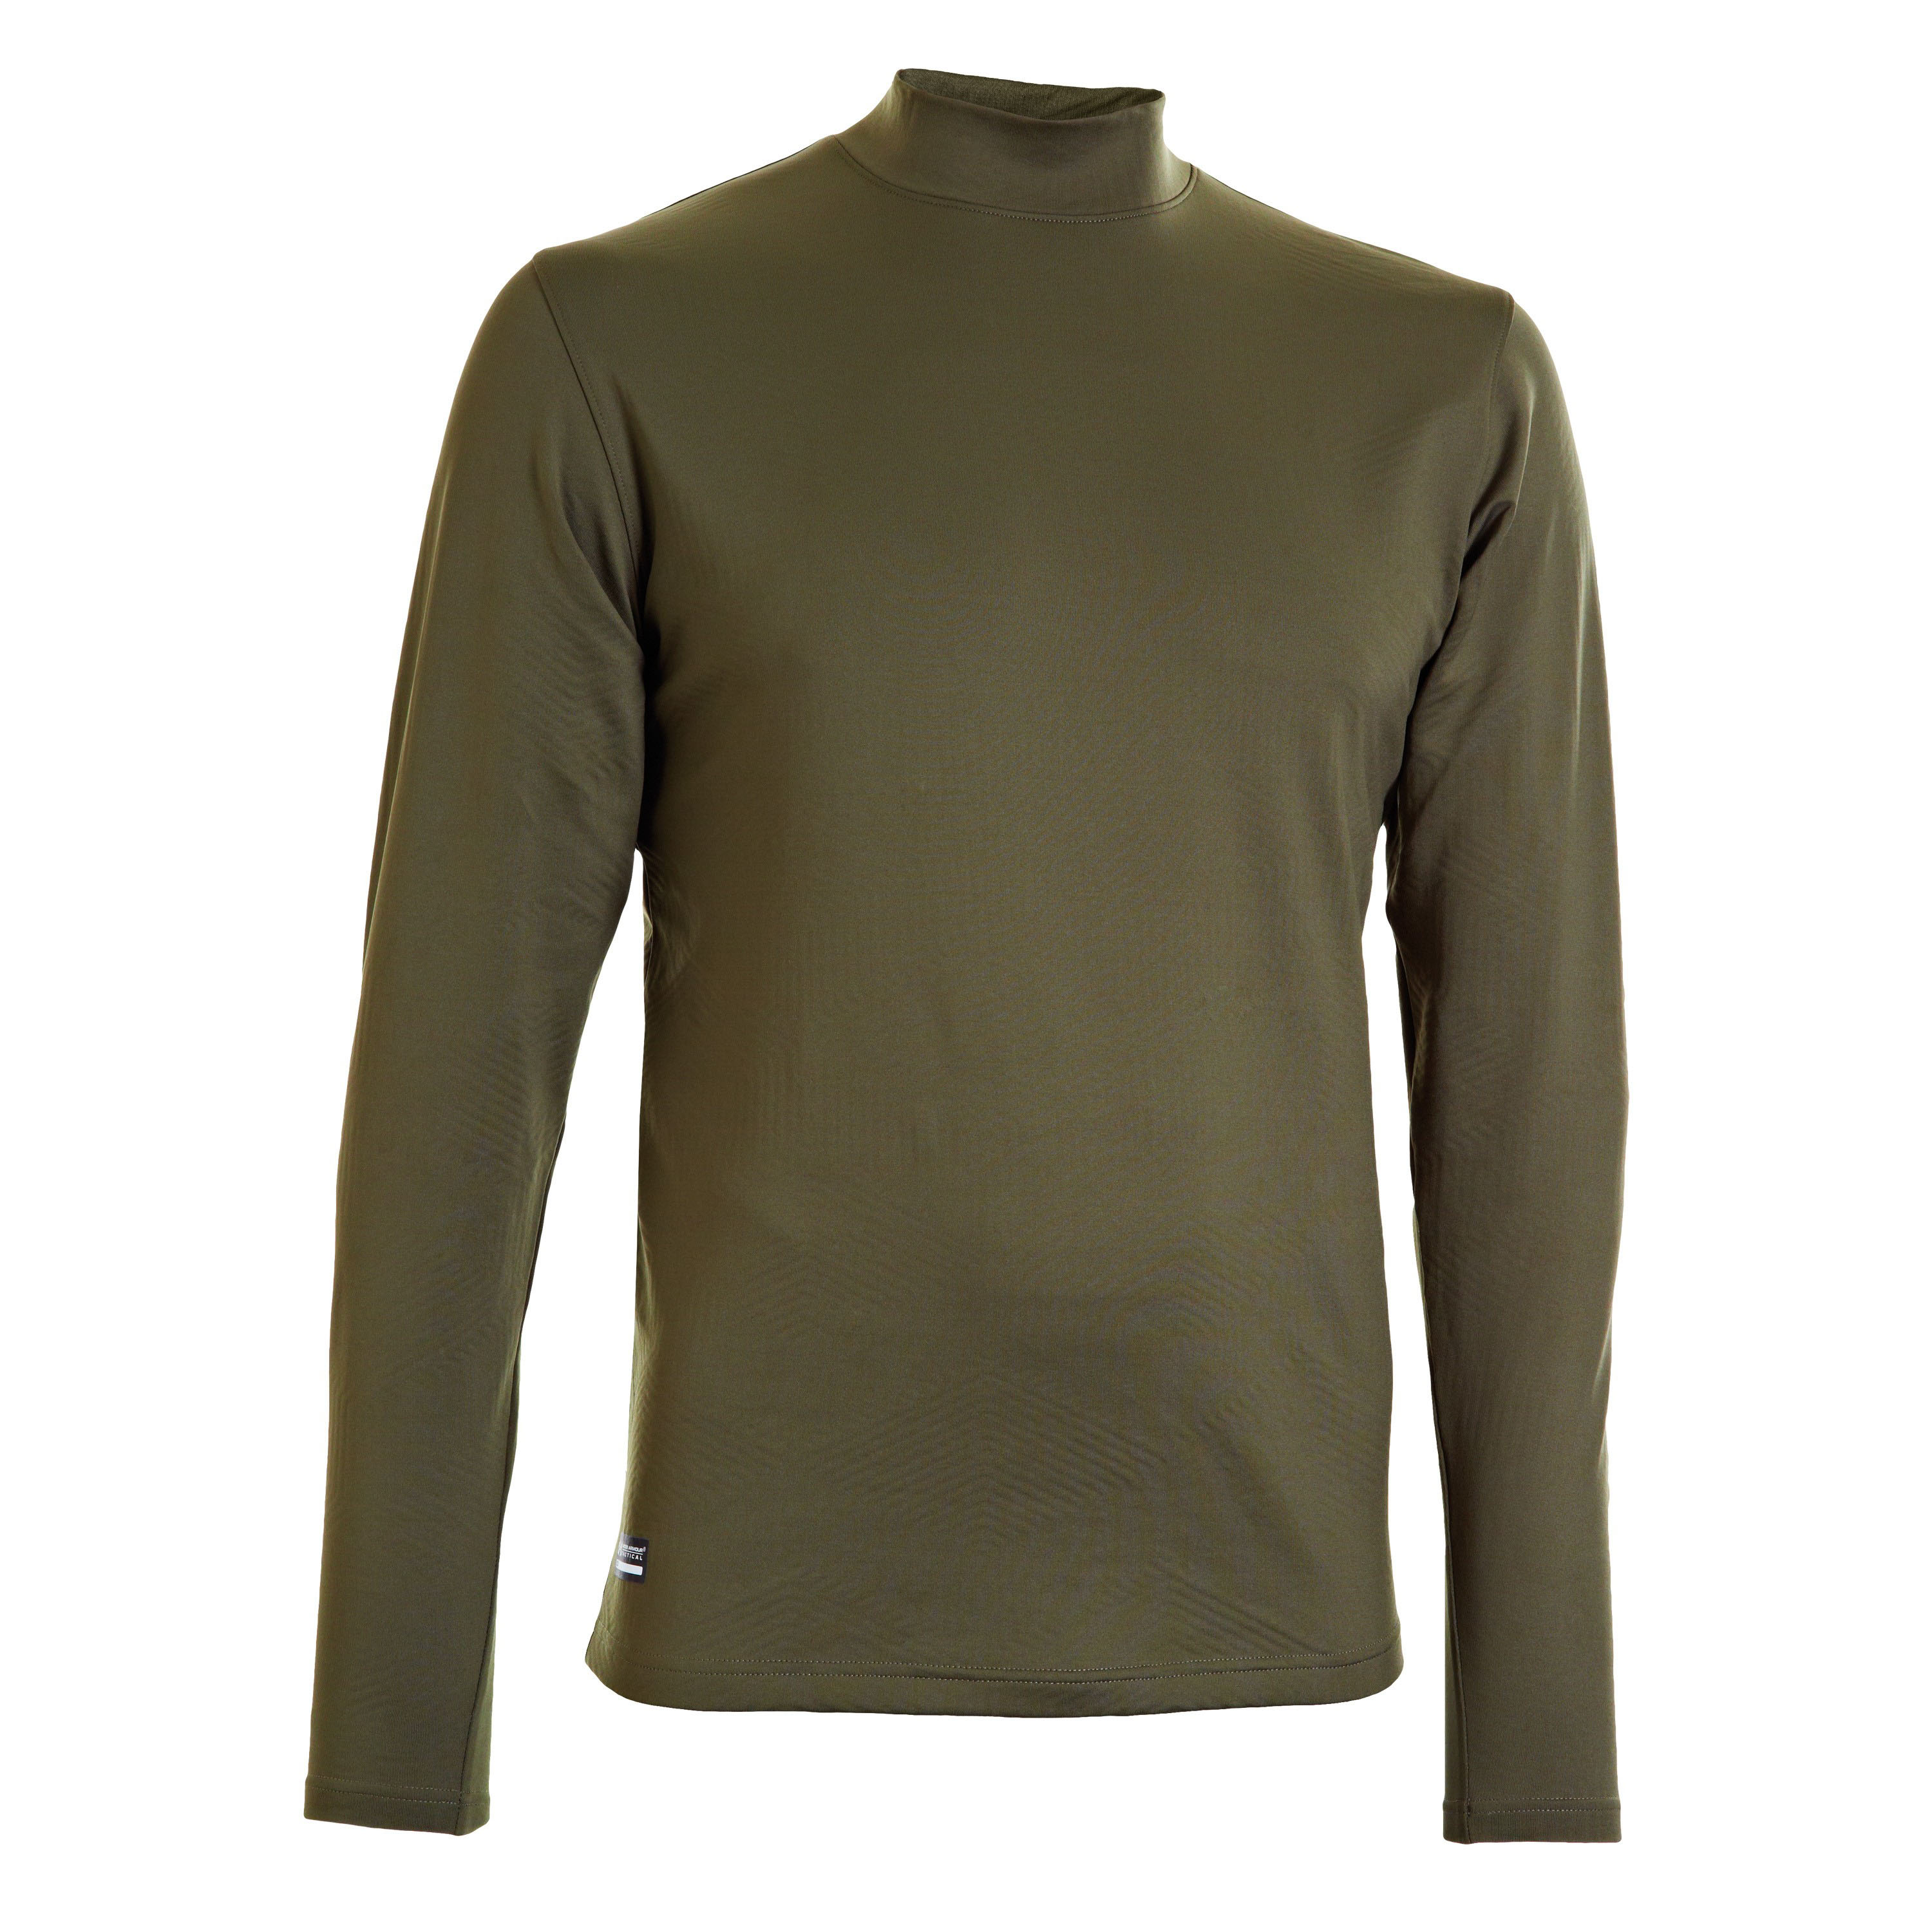 Under Armour Long Arm Shirt Tactical Infrared CG olive